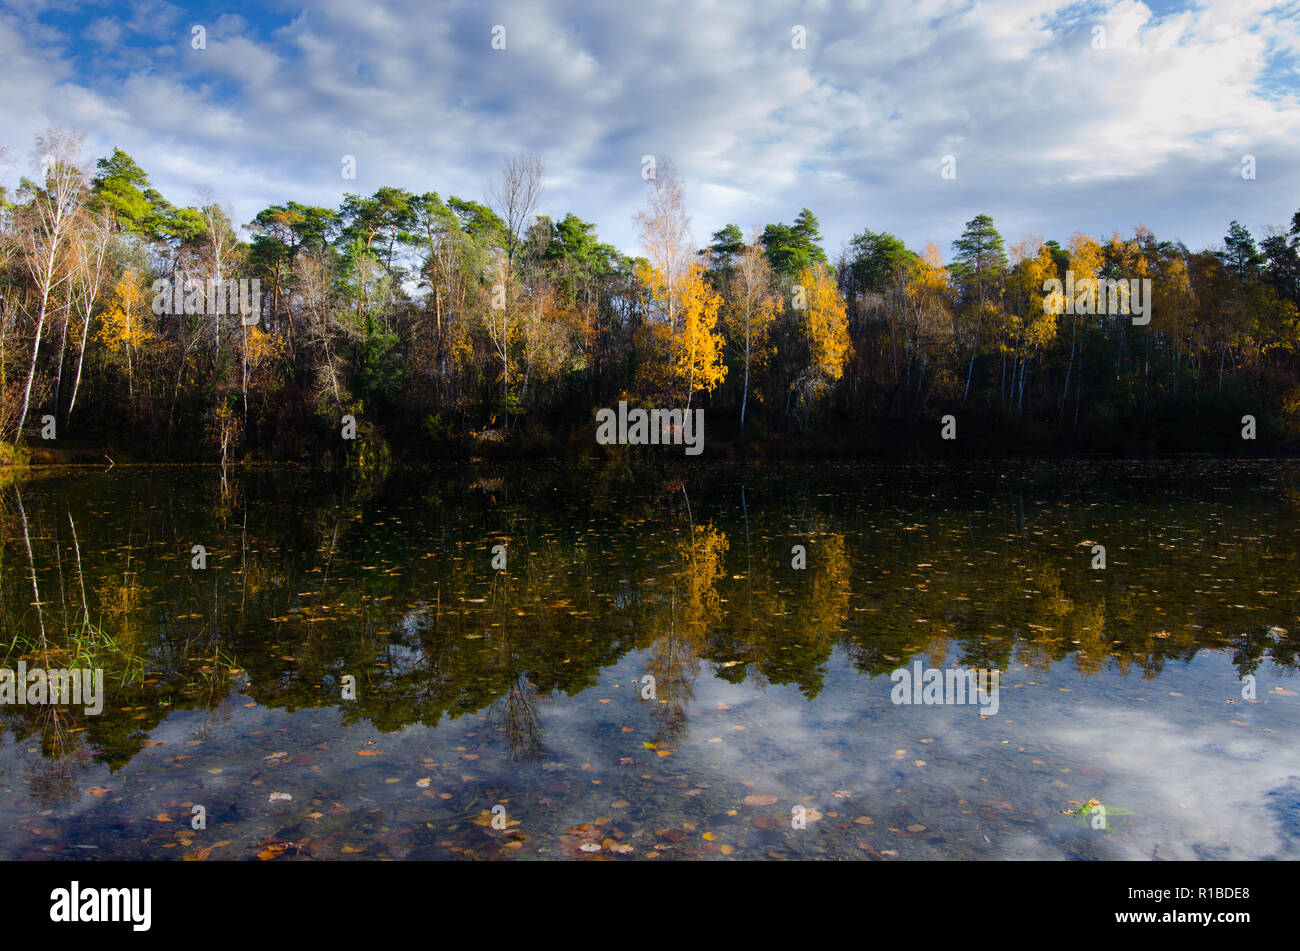 reflections in a lake in alsace near marckolsheim - Stock Image